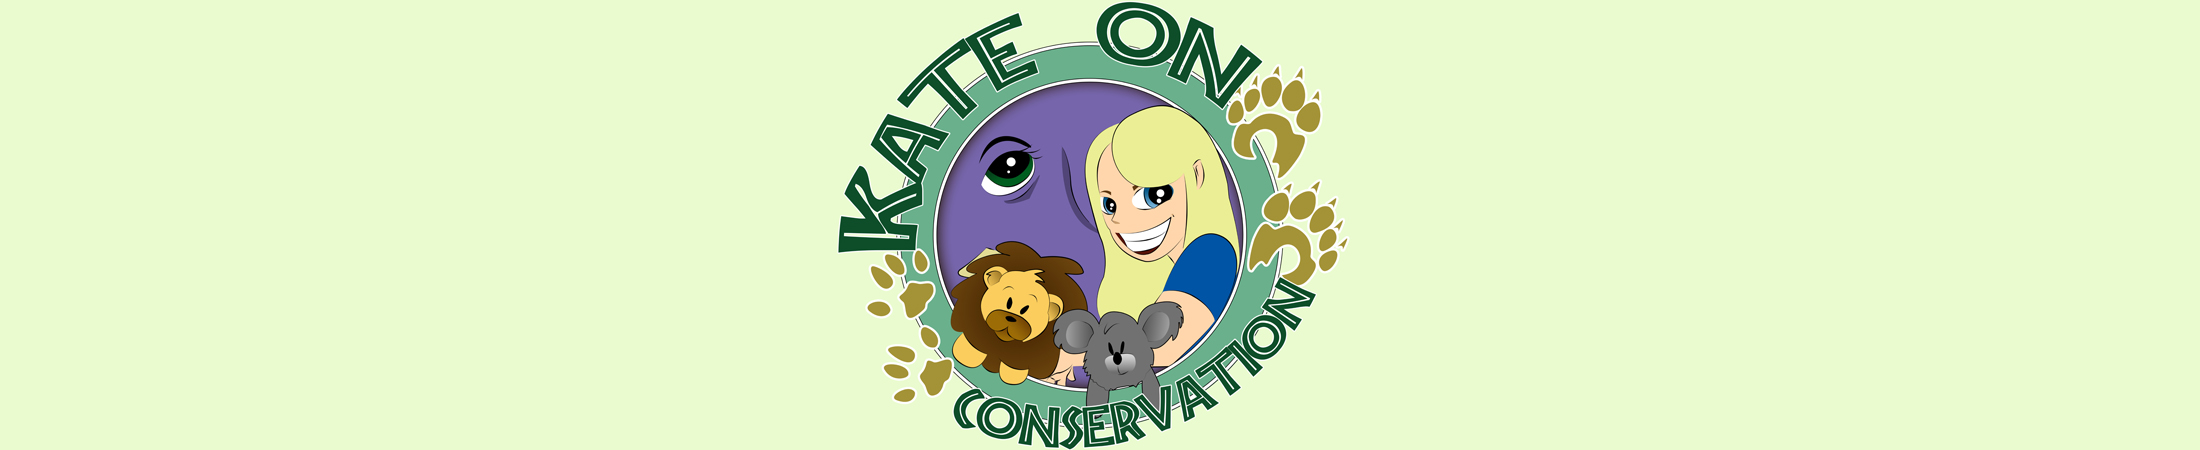 Kate on Conservation